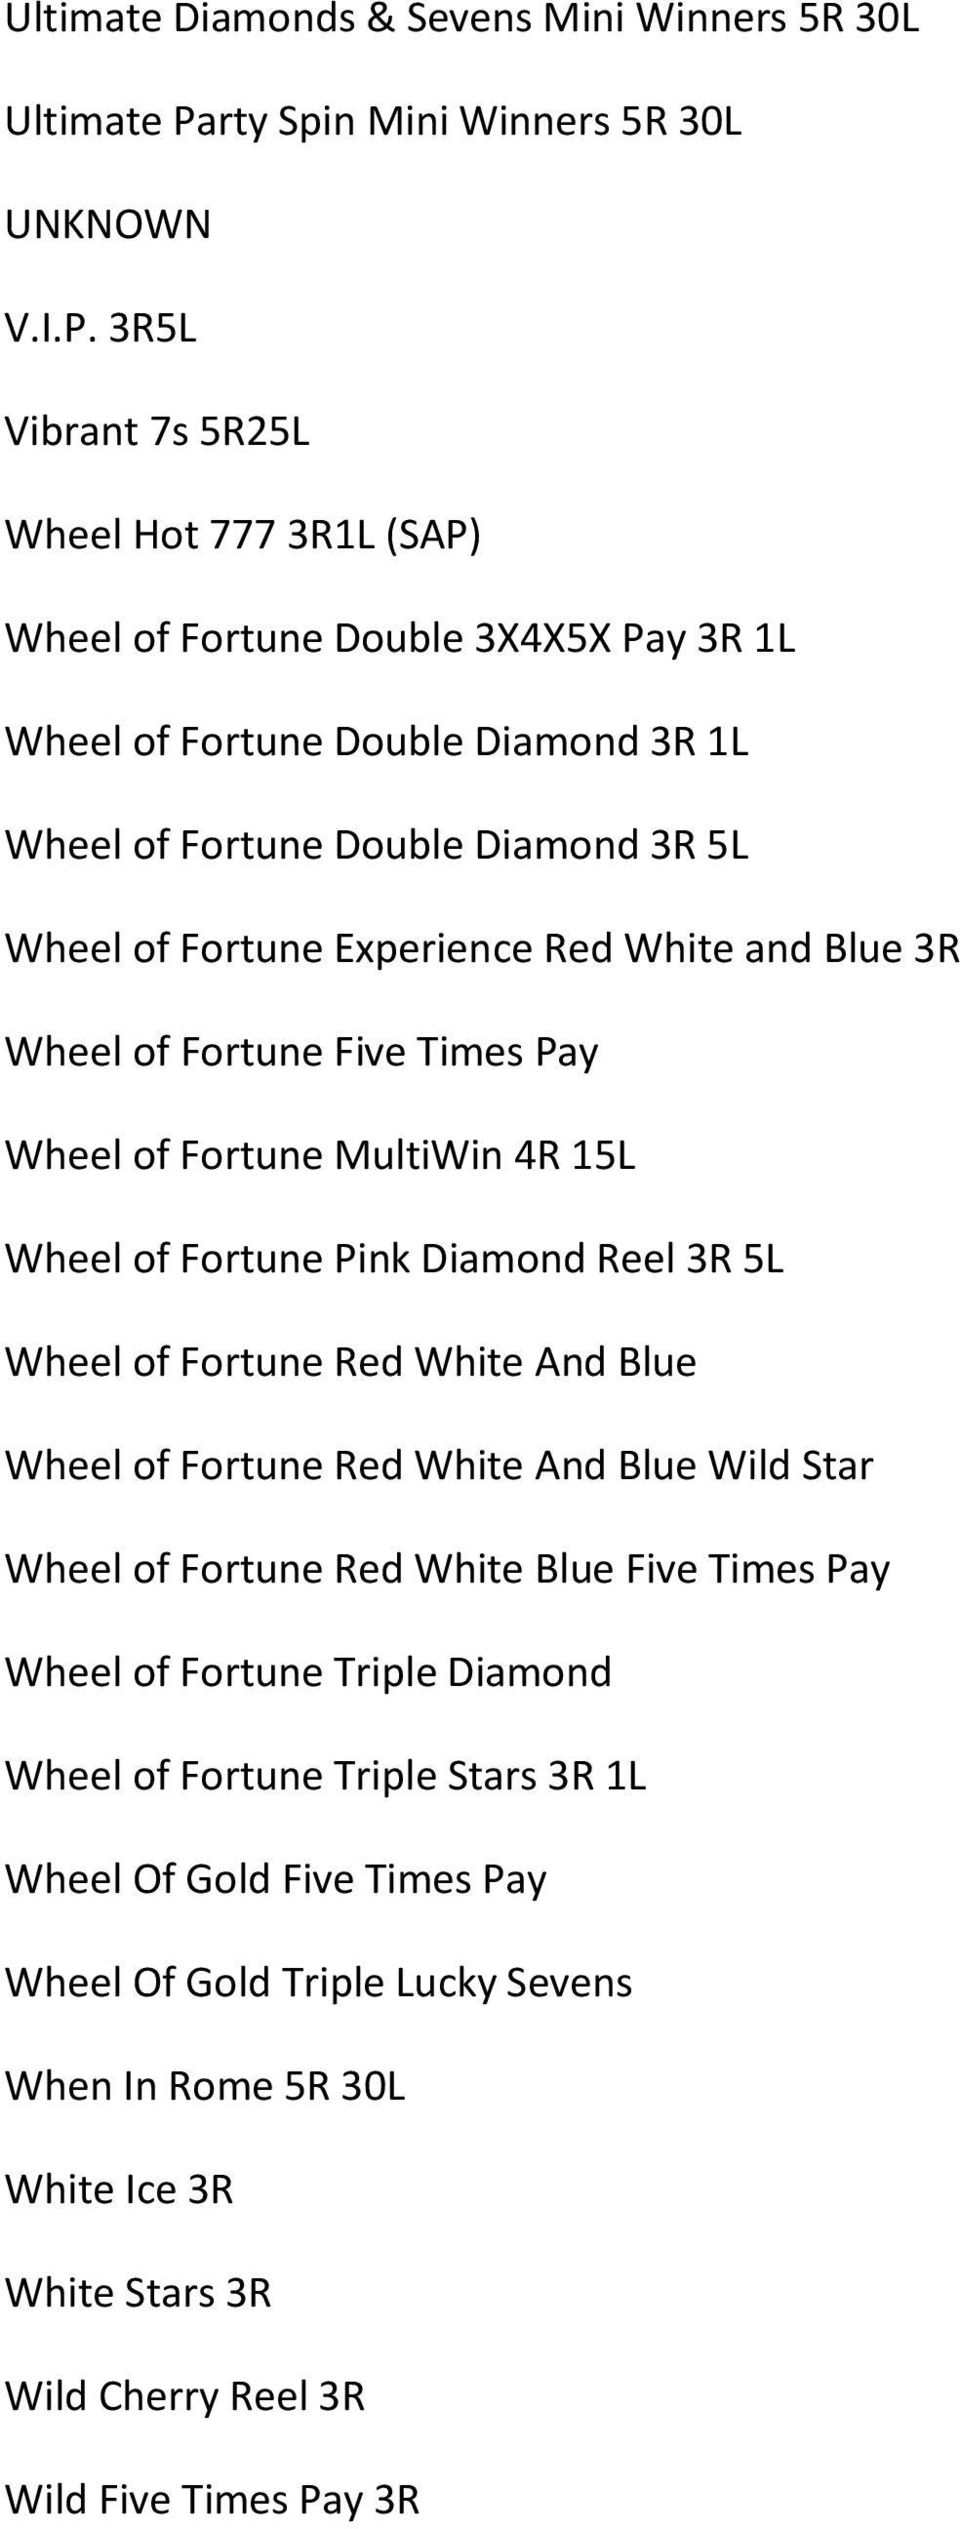 3R5L Vibrant 7s 5R25L Wheel Hot 777 3R1L (SAP) Wheel of Fortune Double 3X4X5X Pay 3R 1L Wheel of Fortune Double Diamond 3R 1L Wheel of Fortune Double Diamond 3R 5L Wheel of Fortune Experience